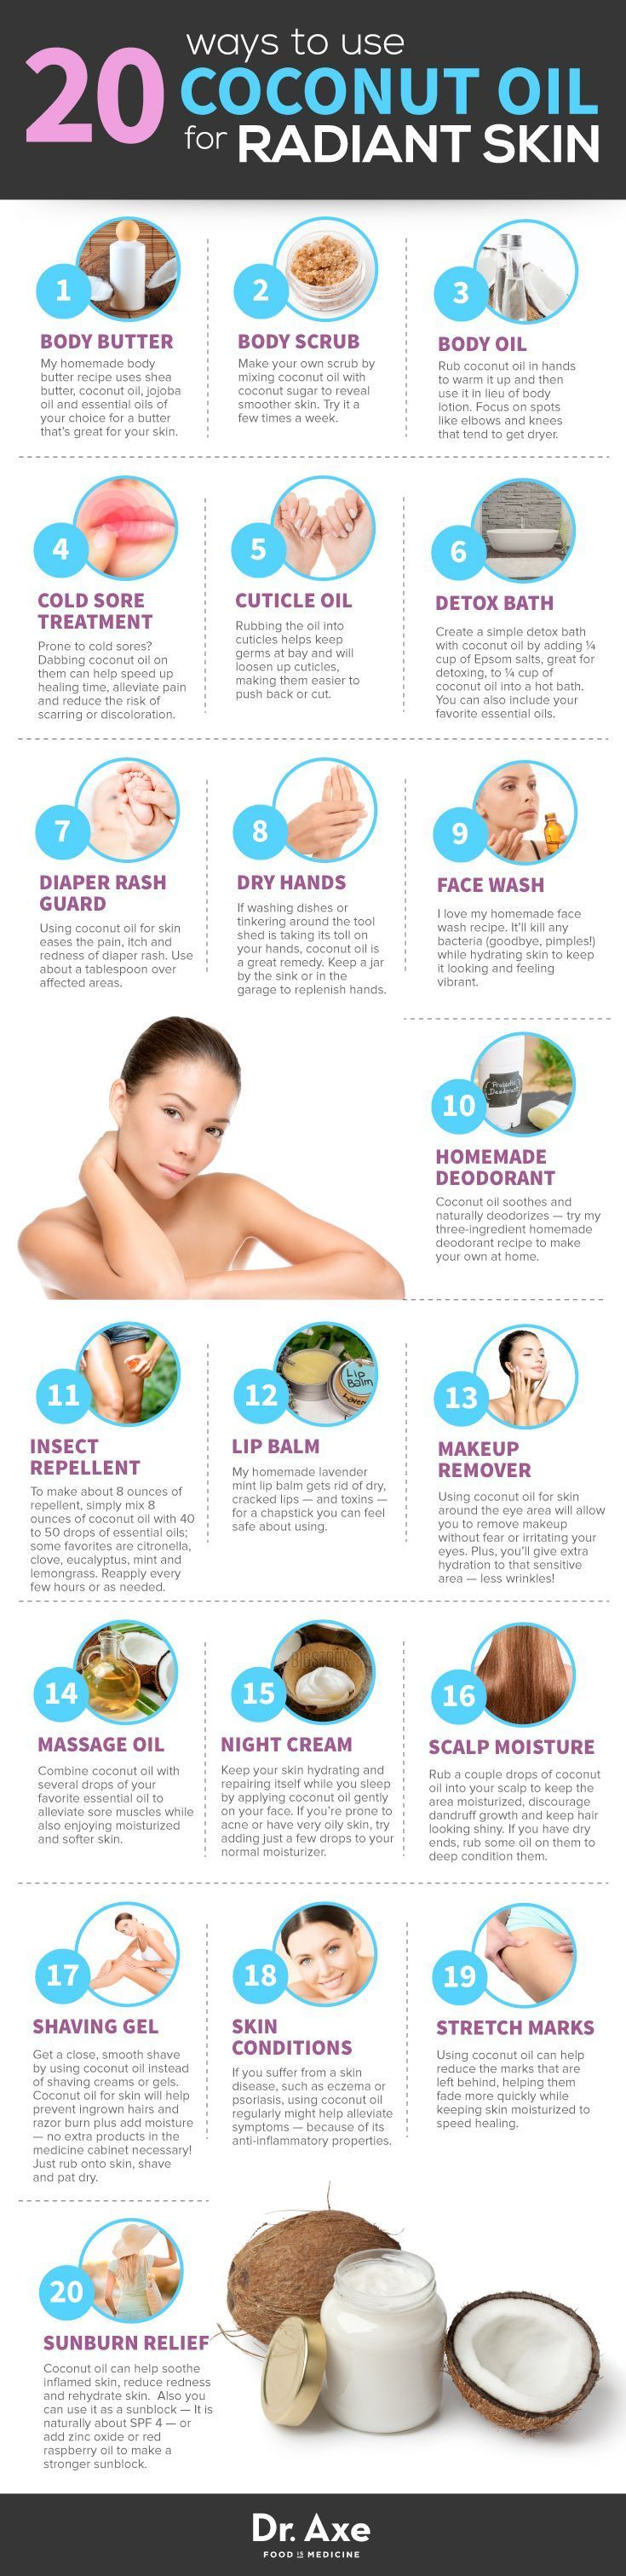 20 Ways to use Coconut Oil for Radiant Skin fashion beauty skin health beauty tips coconut oil healthy skin